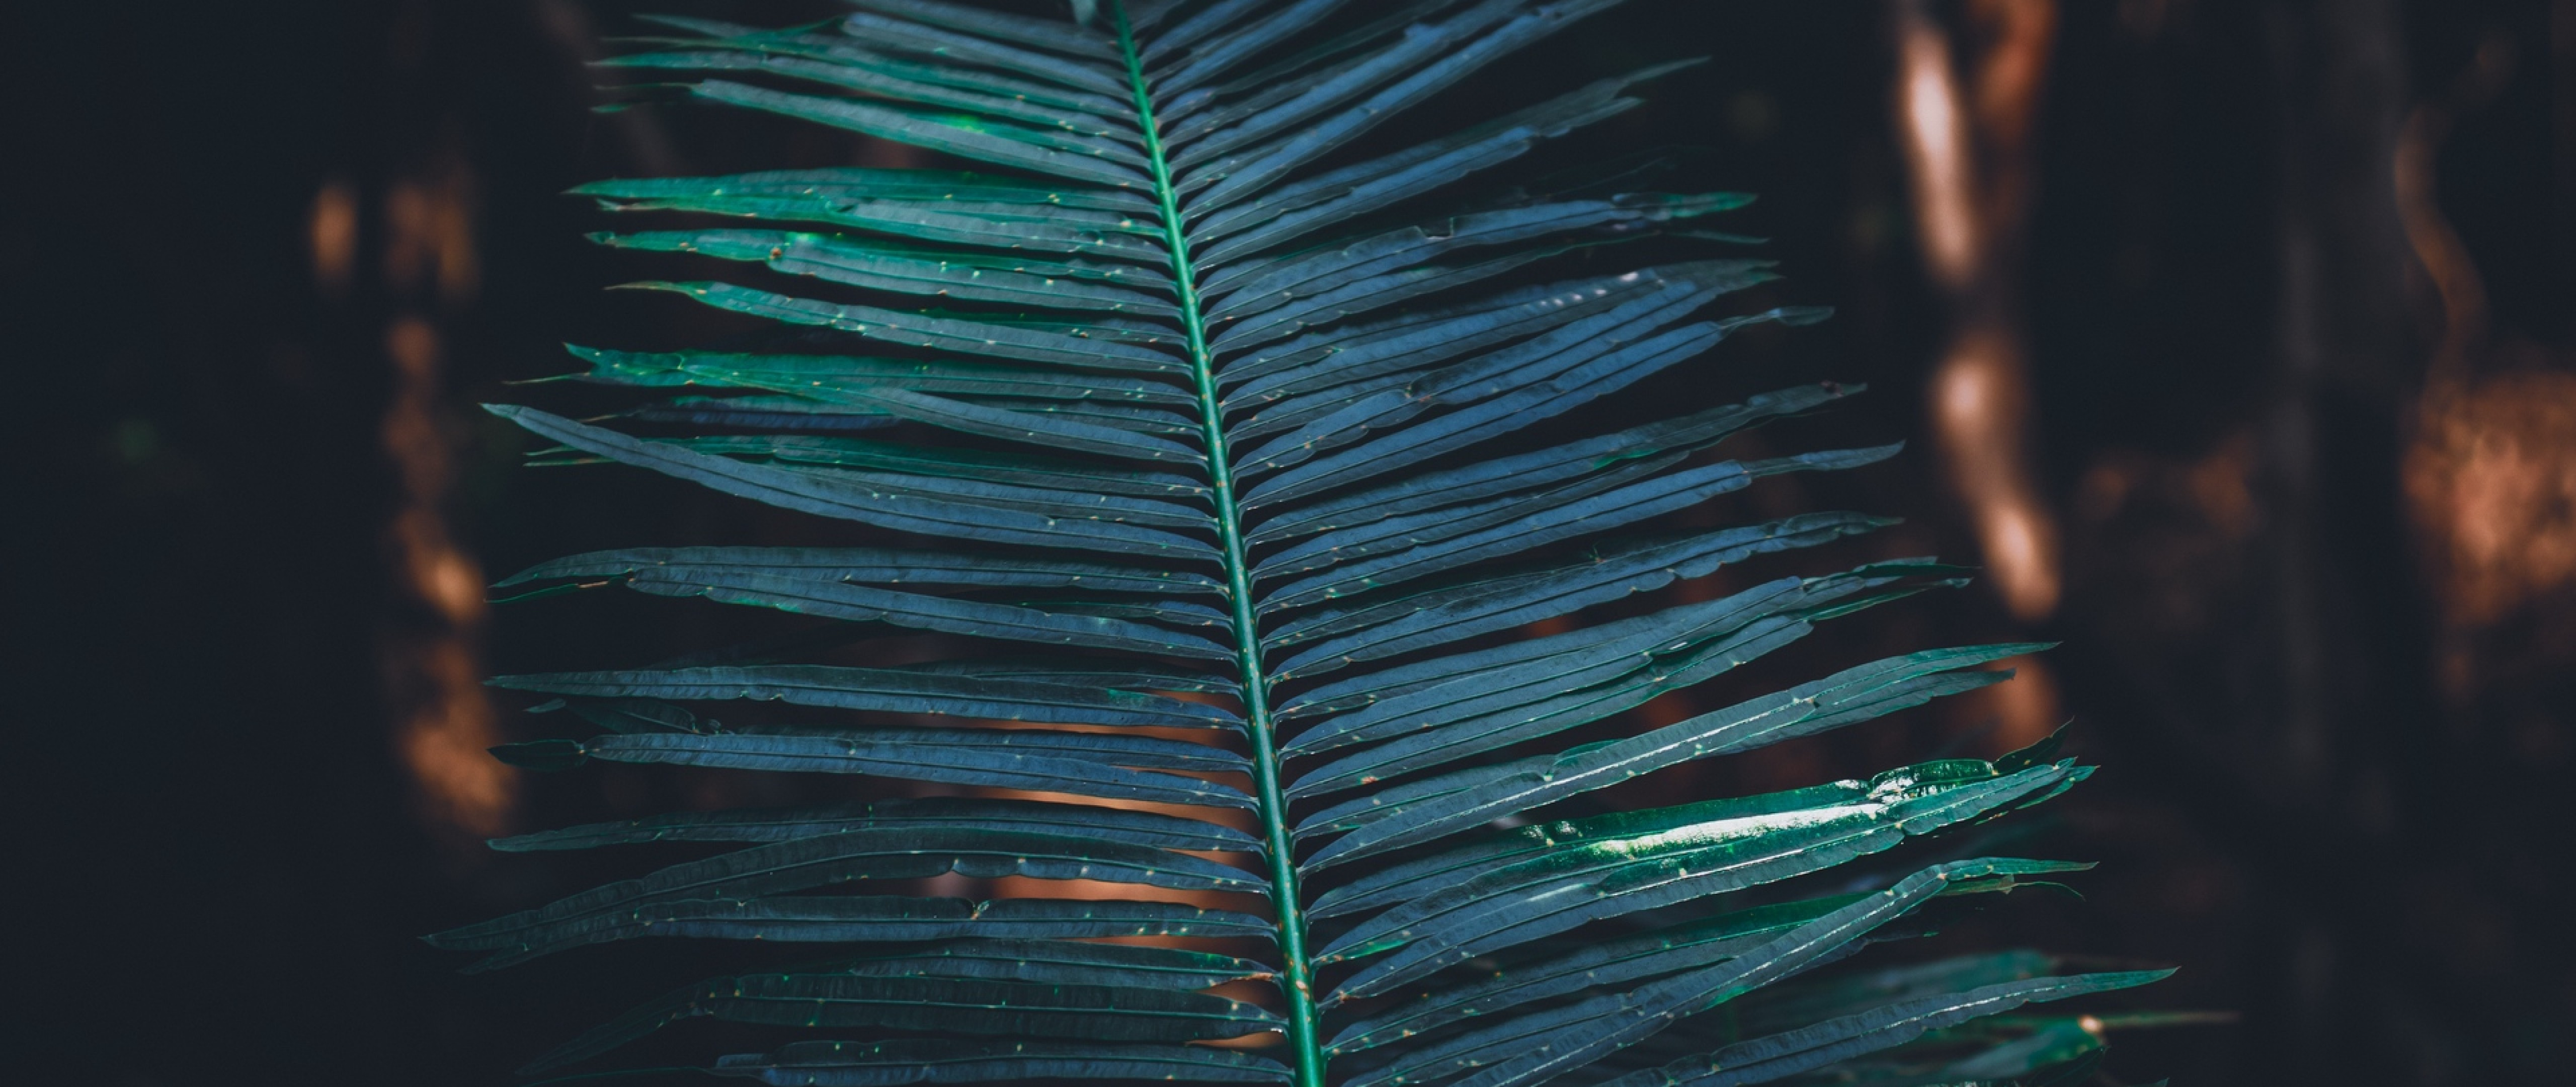 Carved Tropical Leaves Hd Wallpaper 4k Ultra Hd Wide Tv Hd Wallpaper Wallpapers Net 1920x1080 photoshop background nature wallpapers full hd 1080p photoshop wallpapers hd, desktop backgrounds. carved tropical leaves hd wallpaper 4k